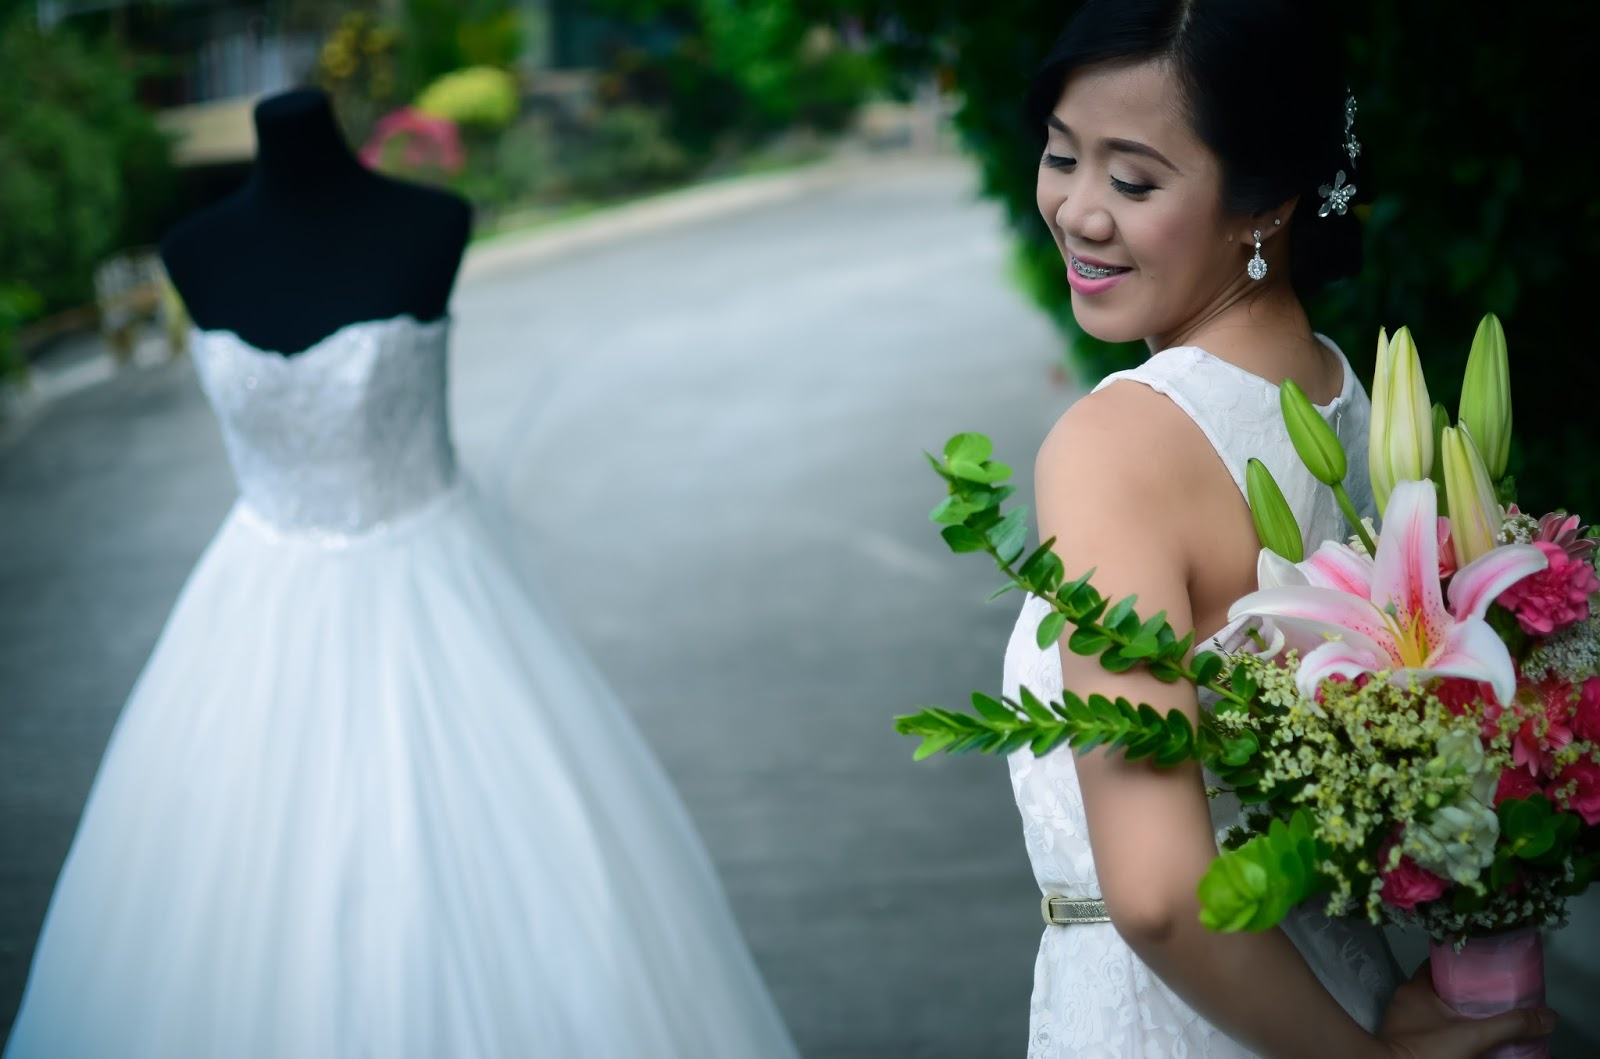 Myjoyful Day: Bougainville Suites and Resort Wedding (Melvin+Glaiza)